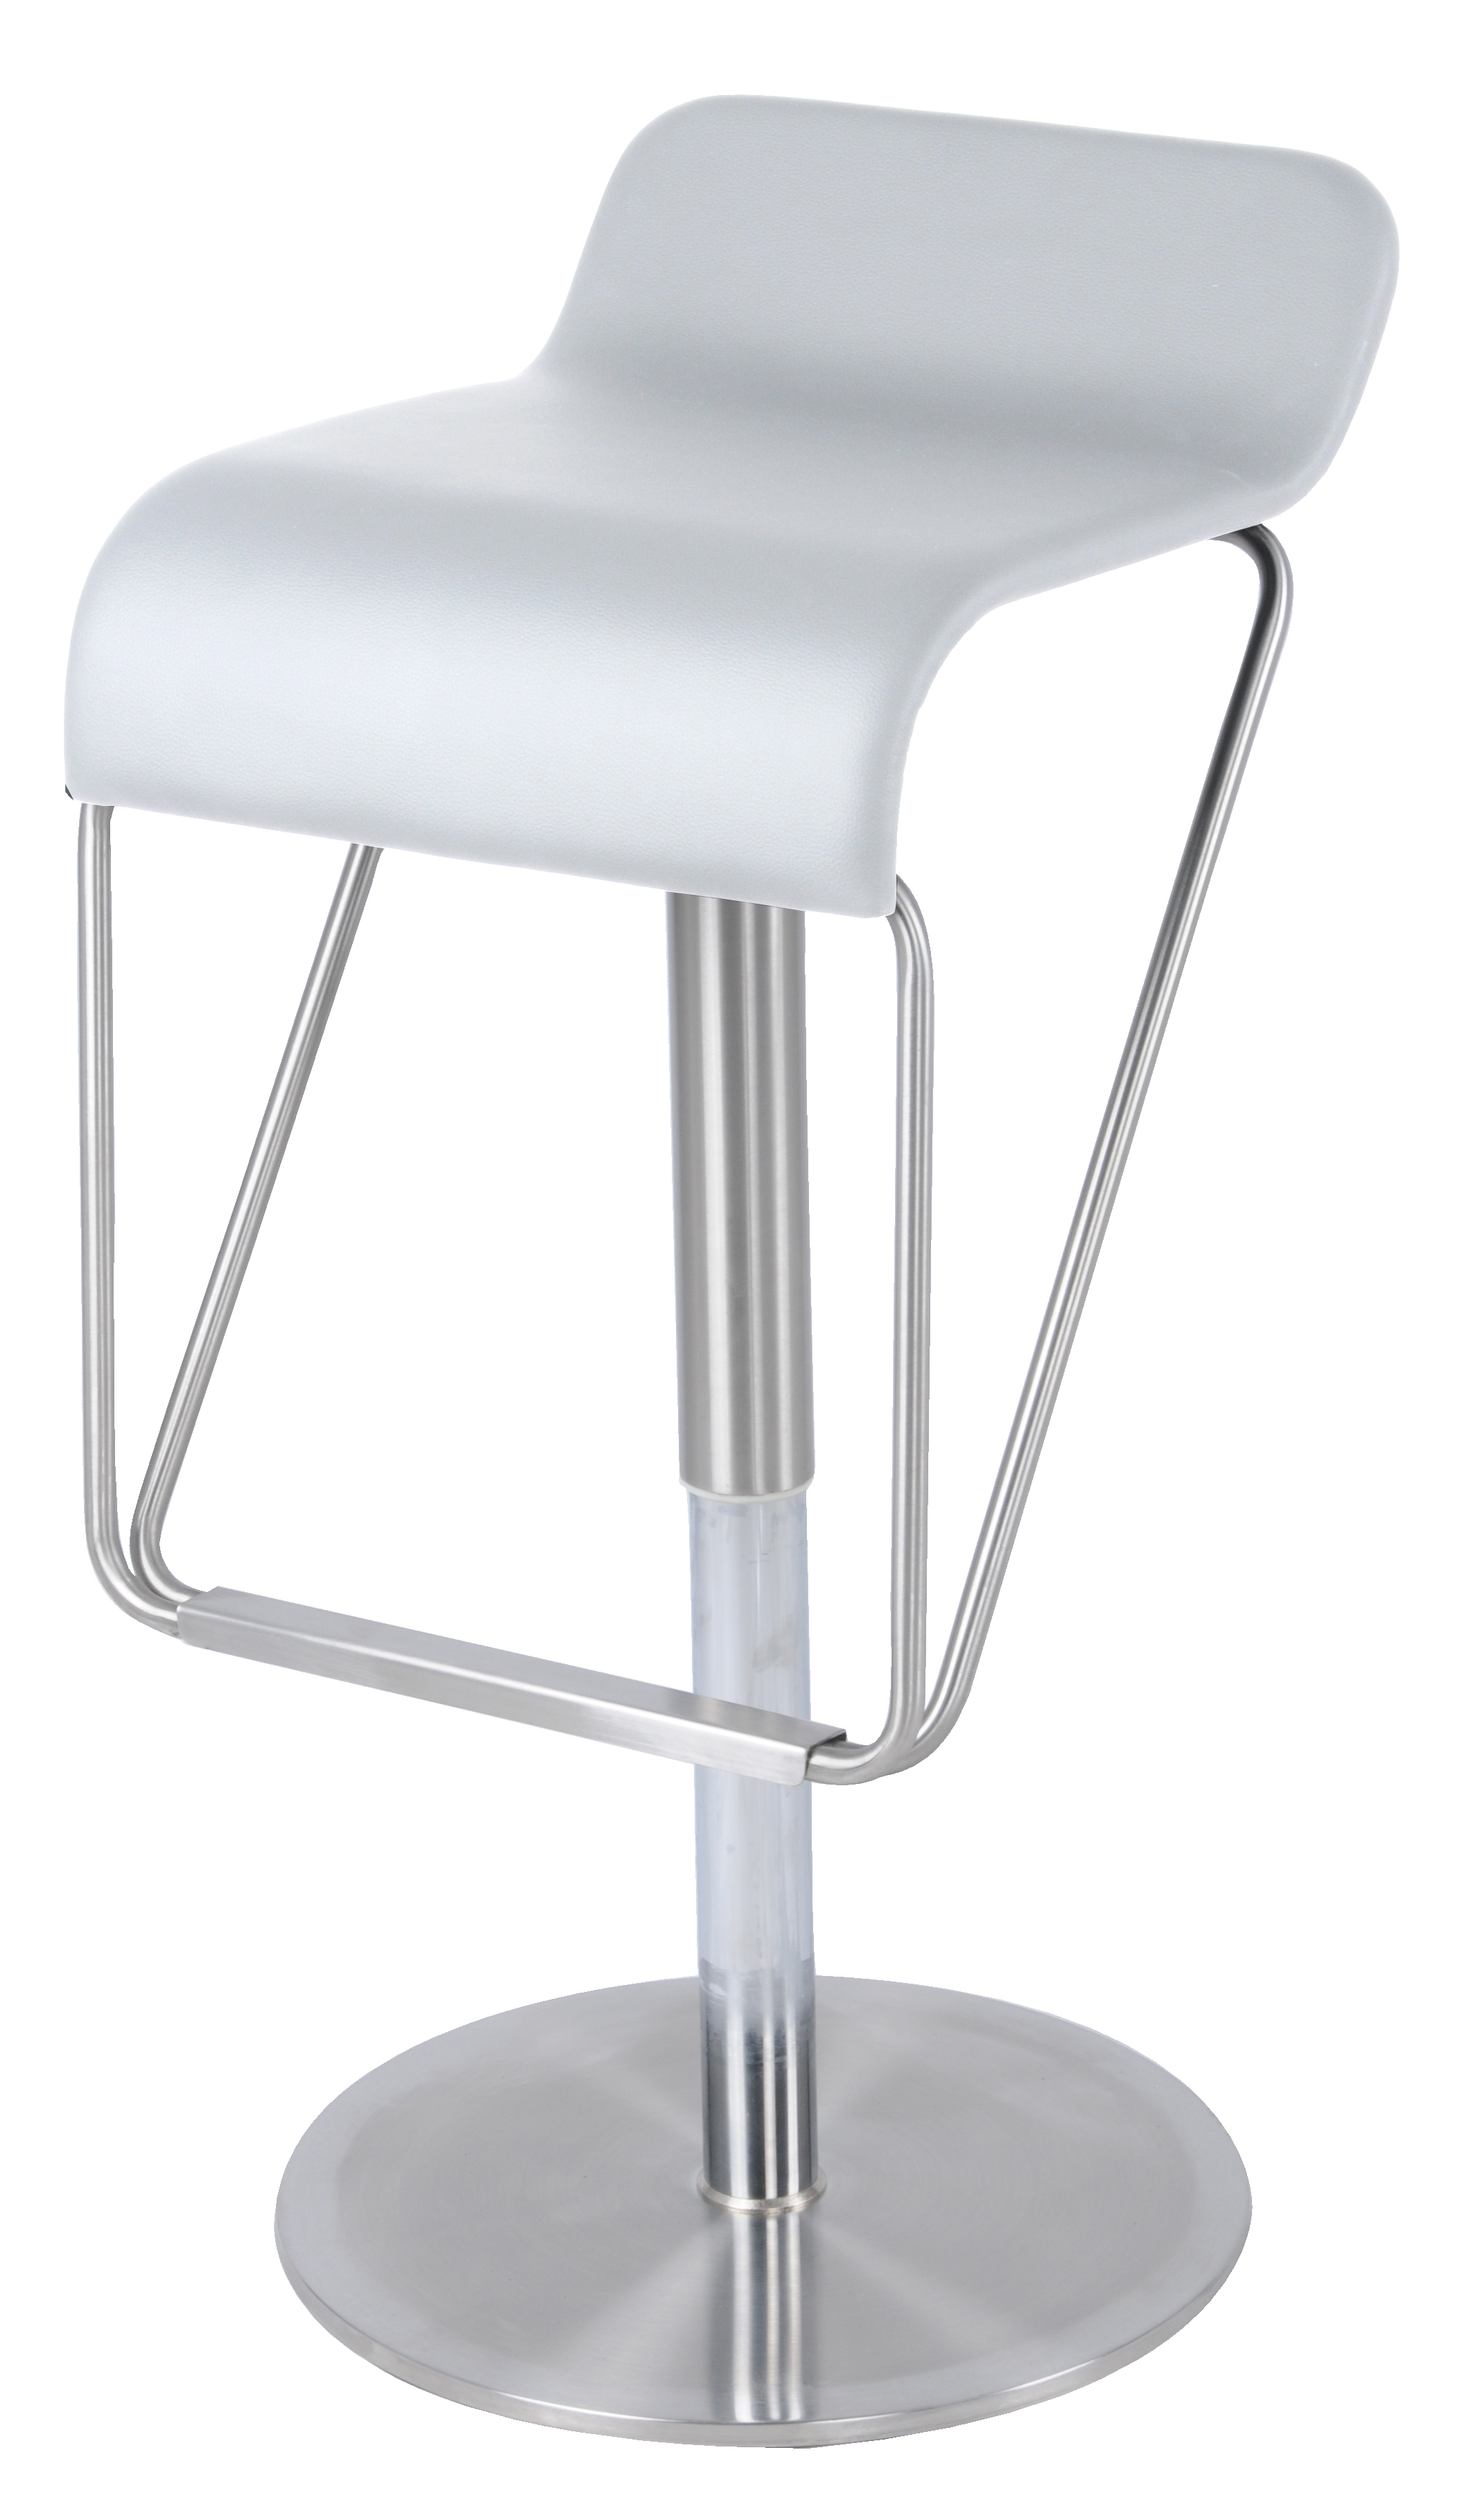 Premium tyrion gaslift bar stool, white